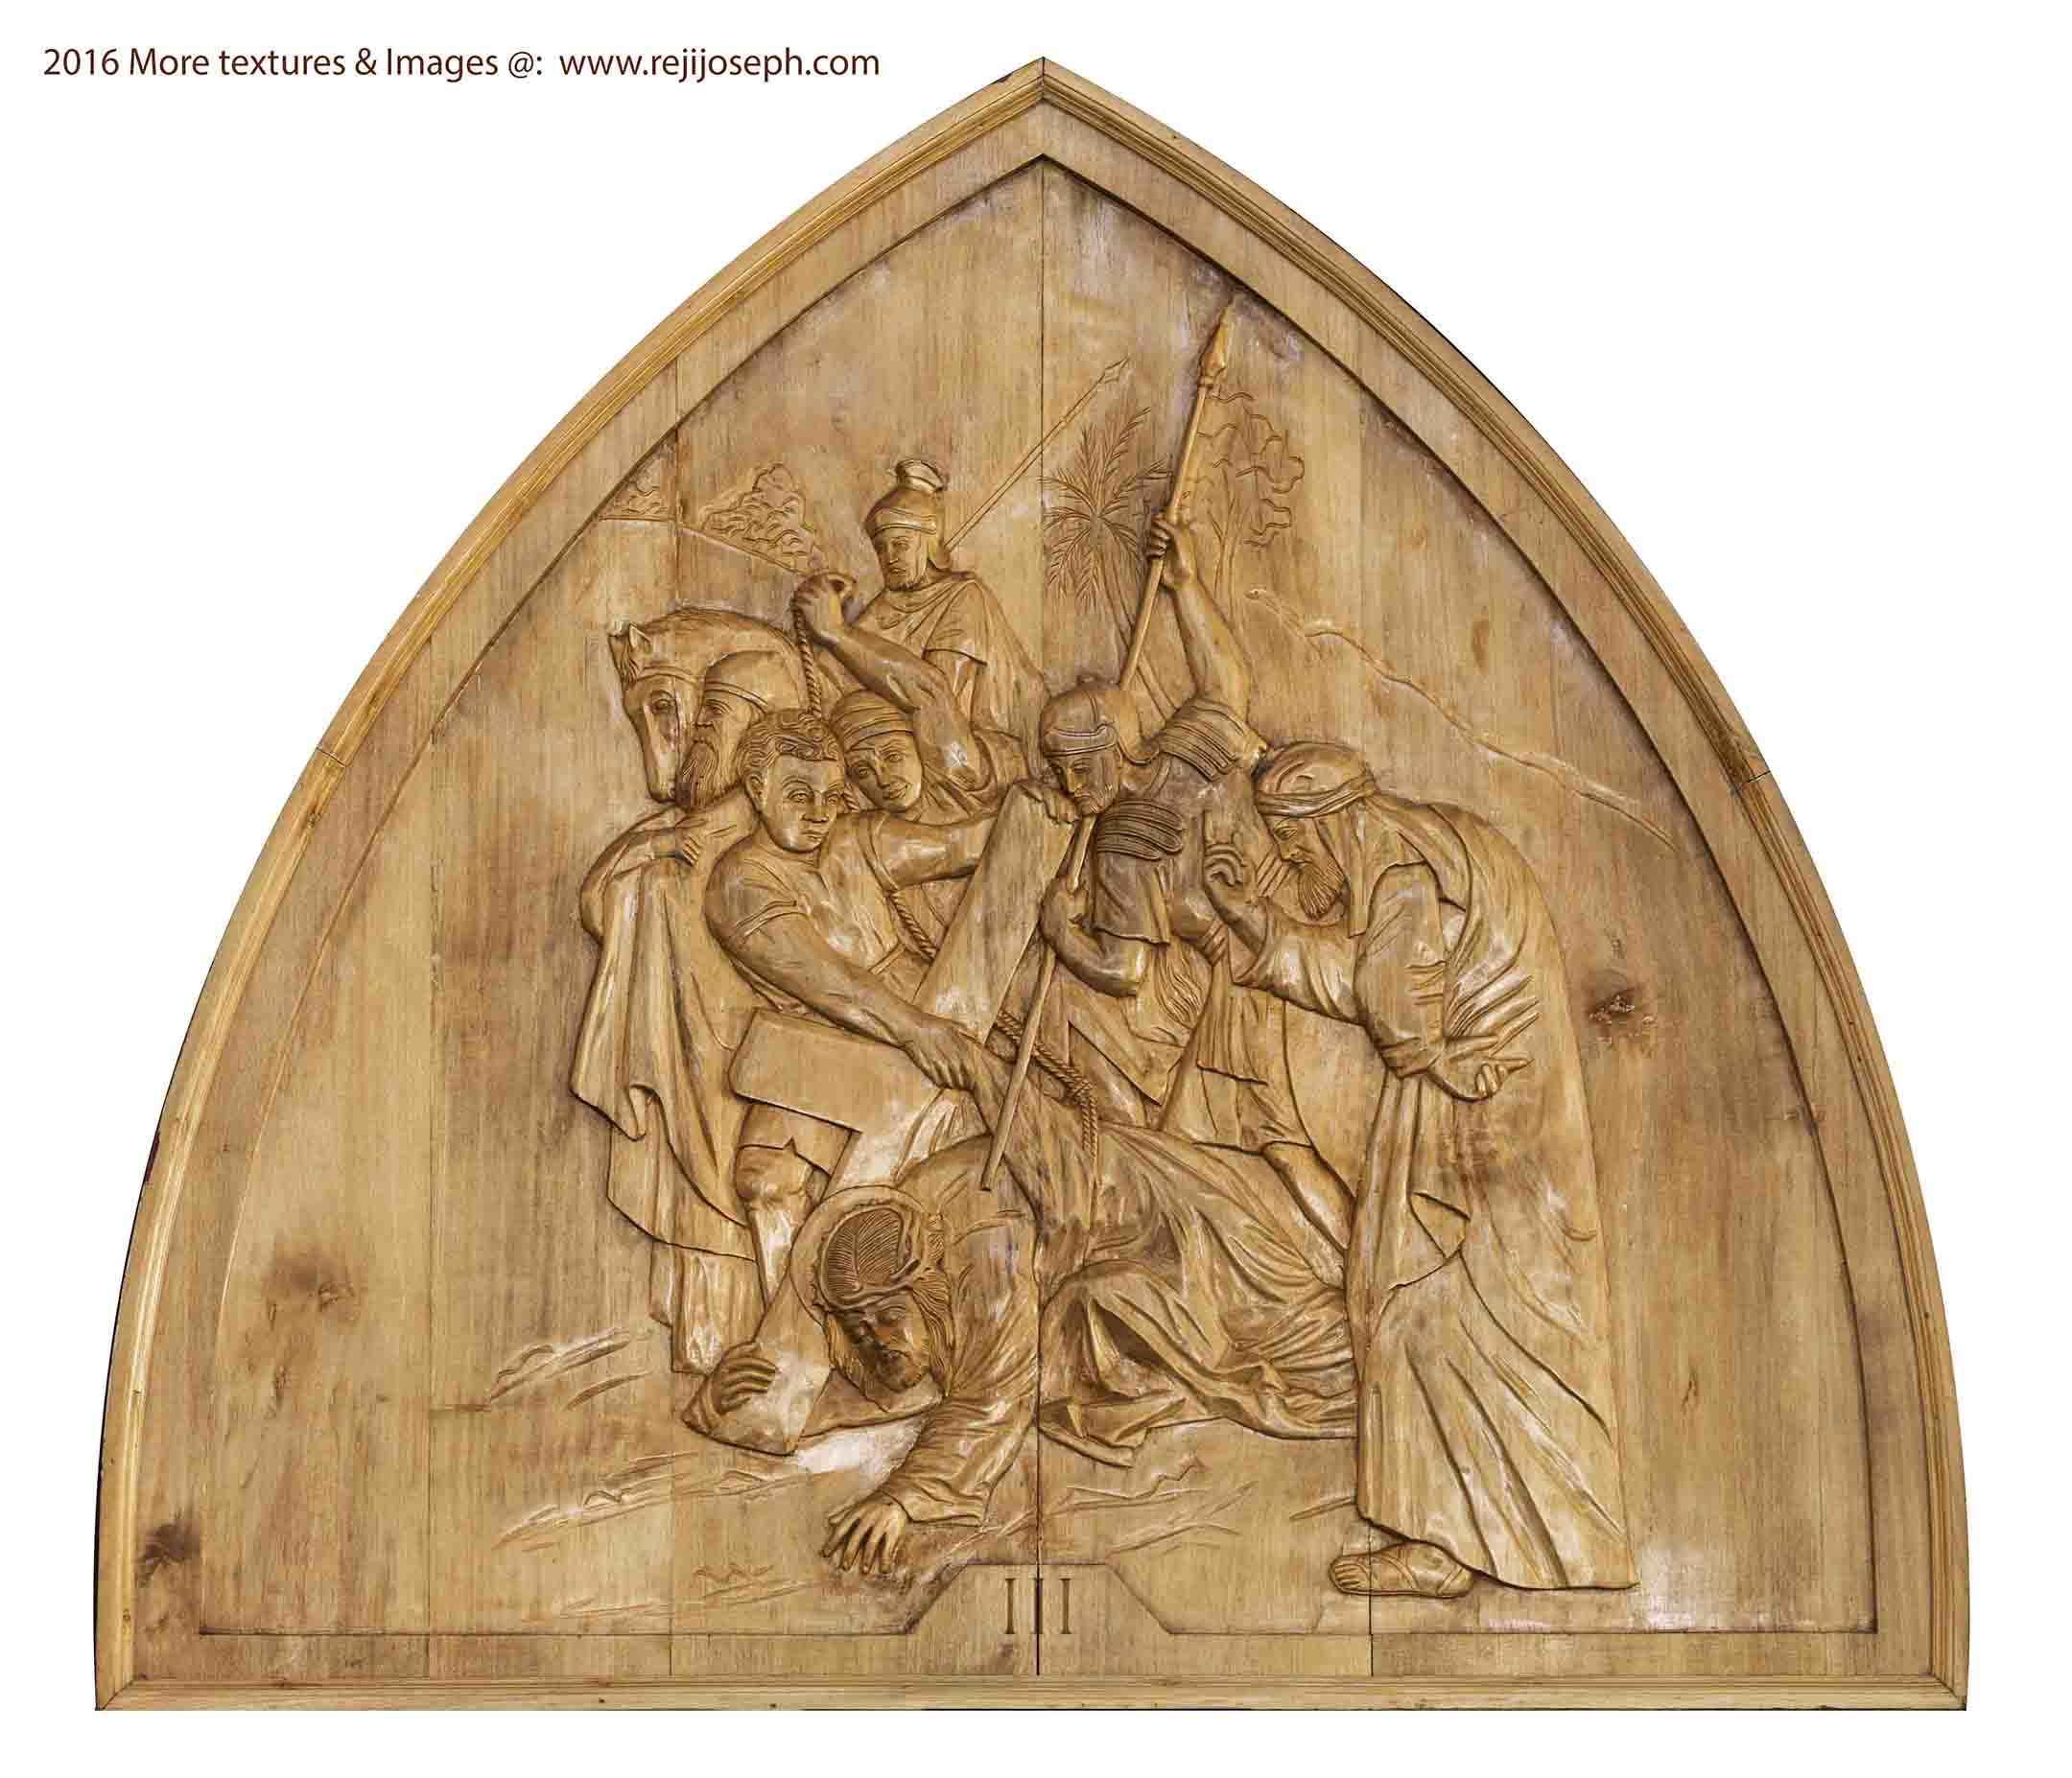 Way of the cross wooden relief 003